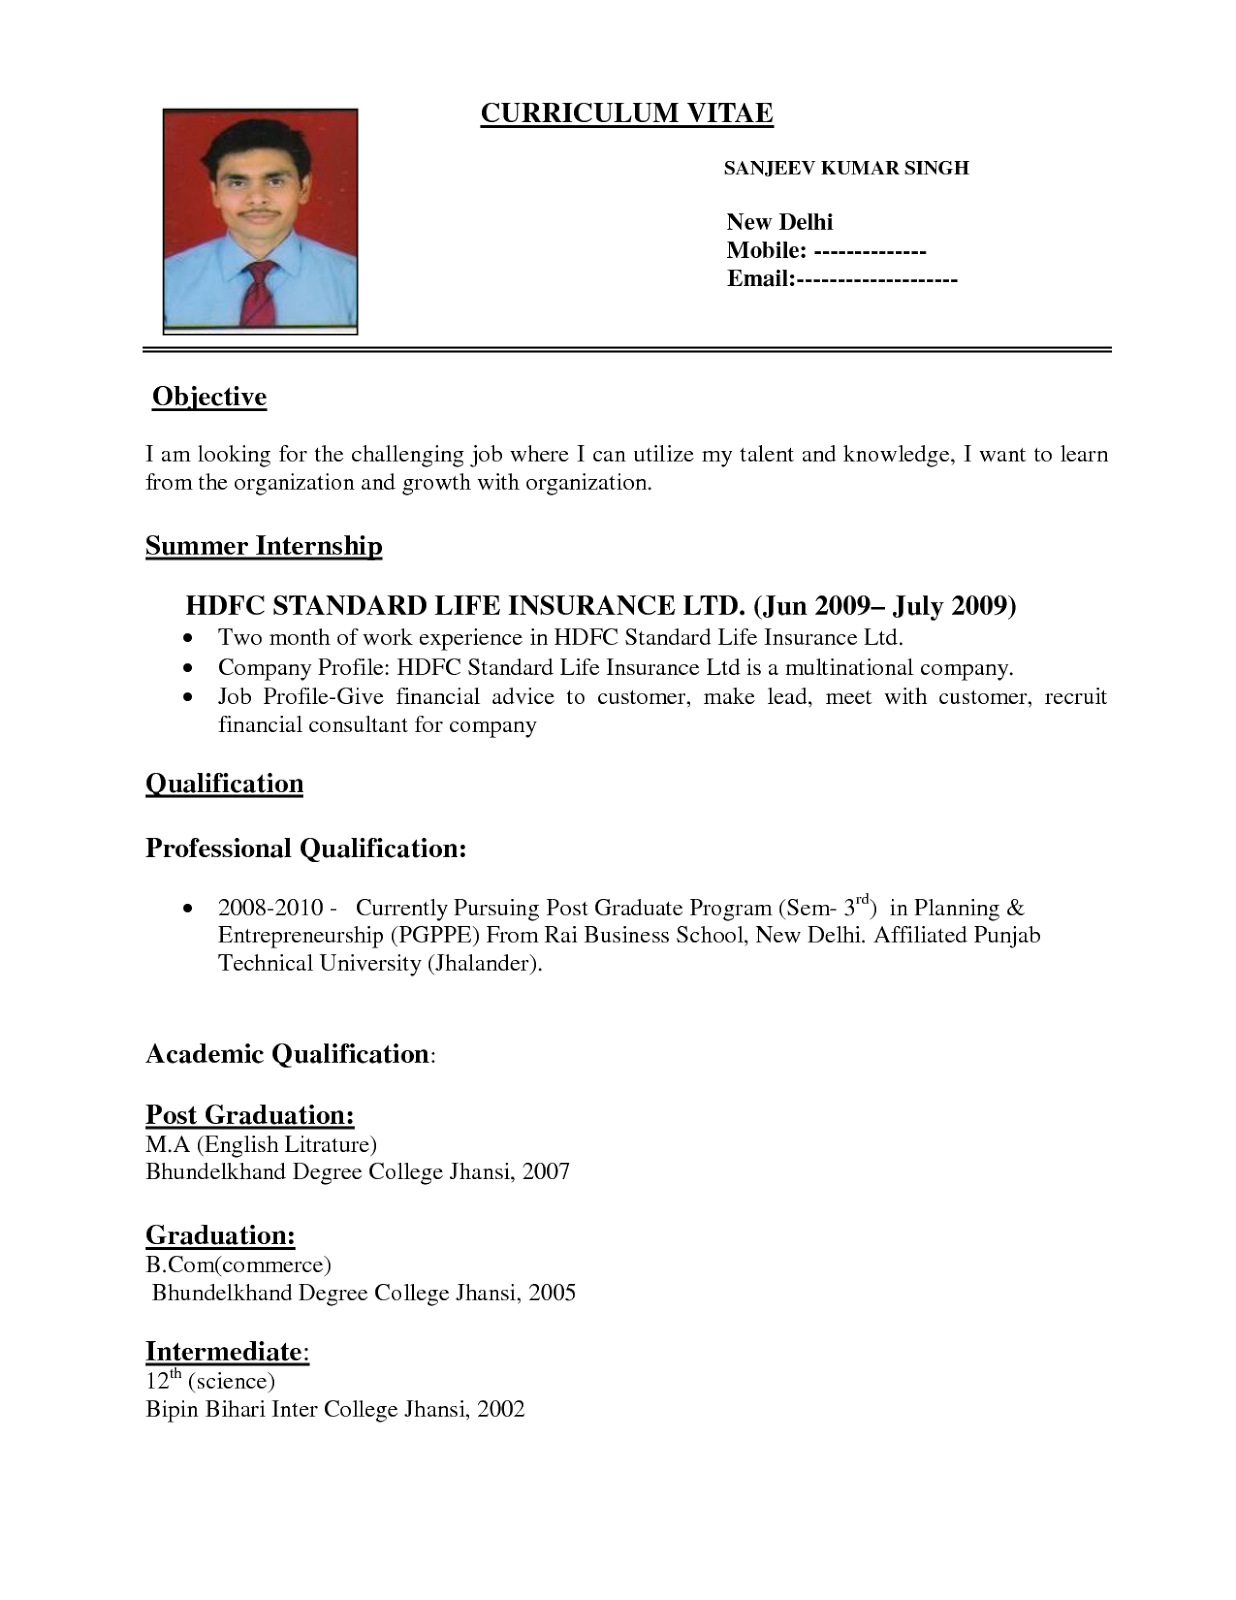 Best Teaching Resume: Good Resume Objective Statements, Personal ...